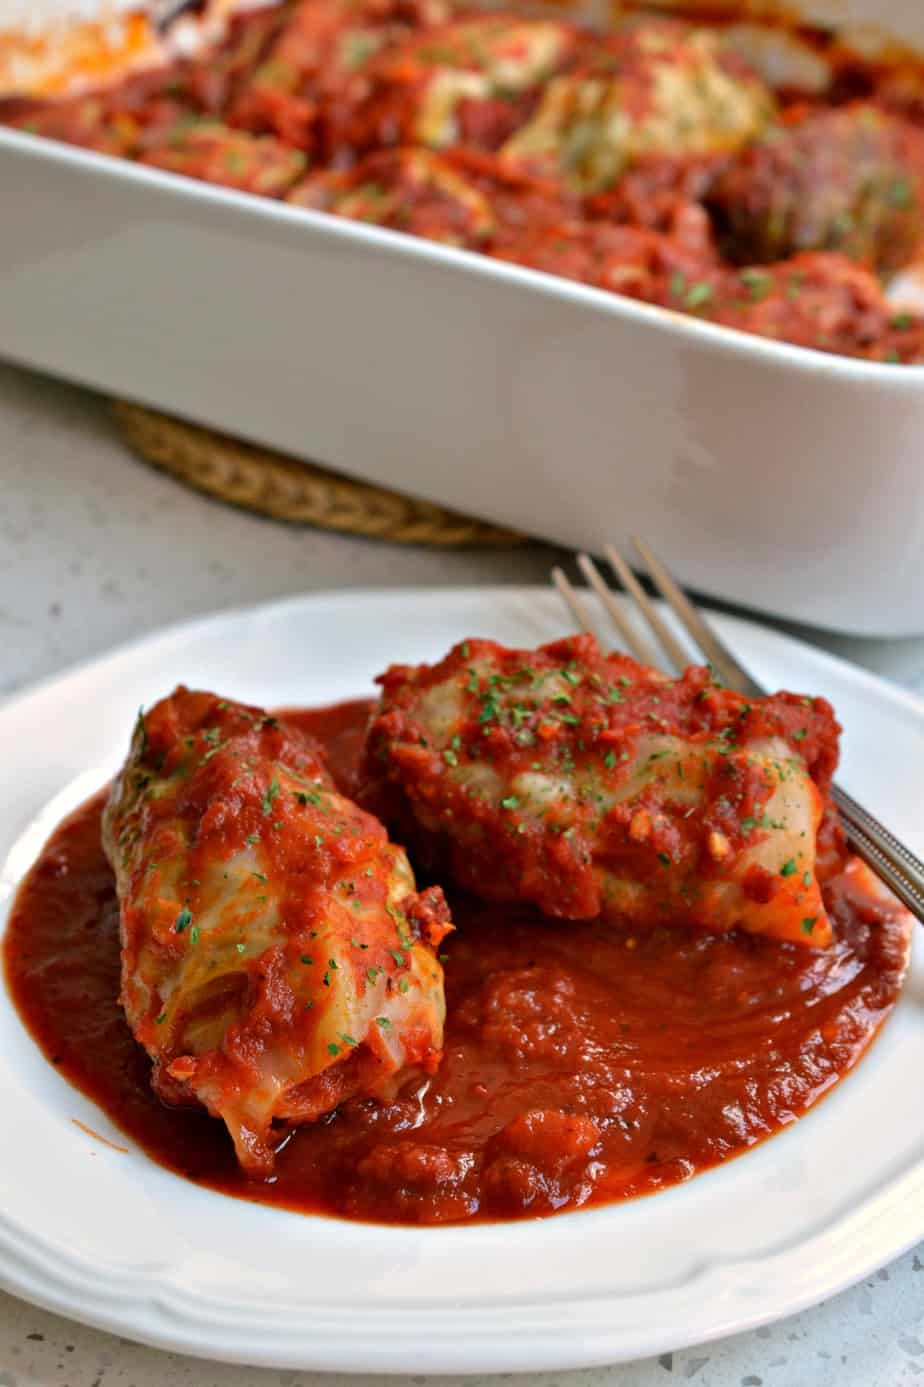 These traditional stuffed Cabbage Rolls are made with ground sausage and ground beef with a sweet and tangy tomato sauce.